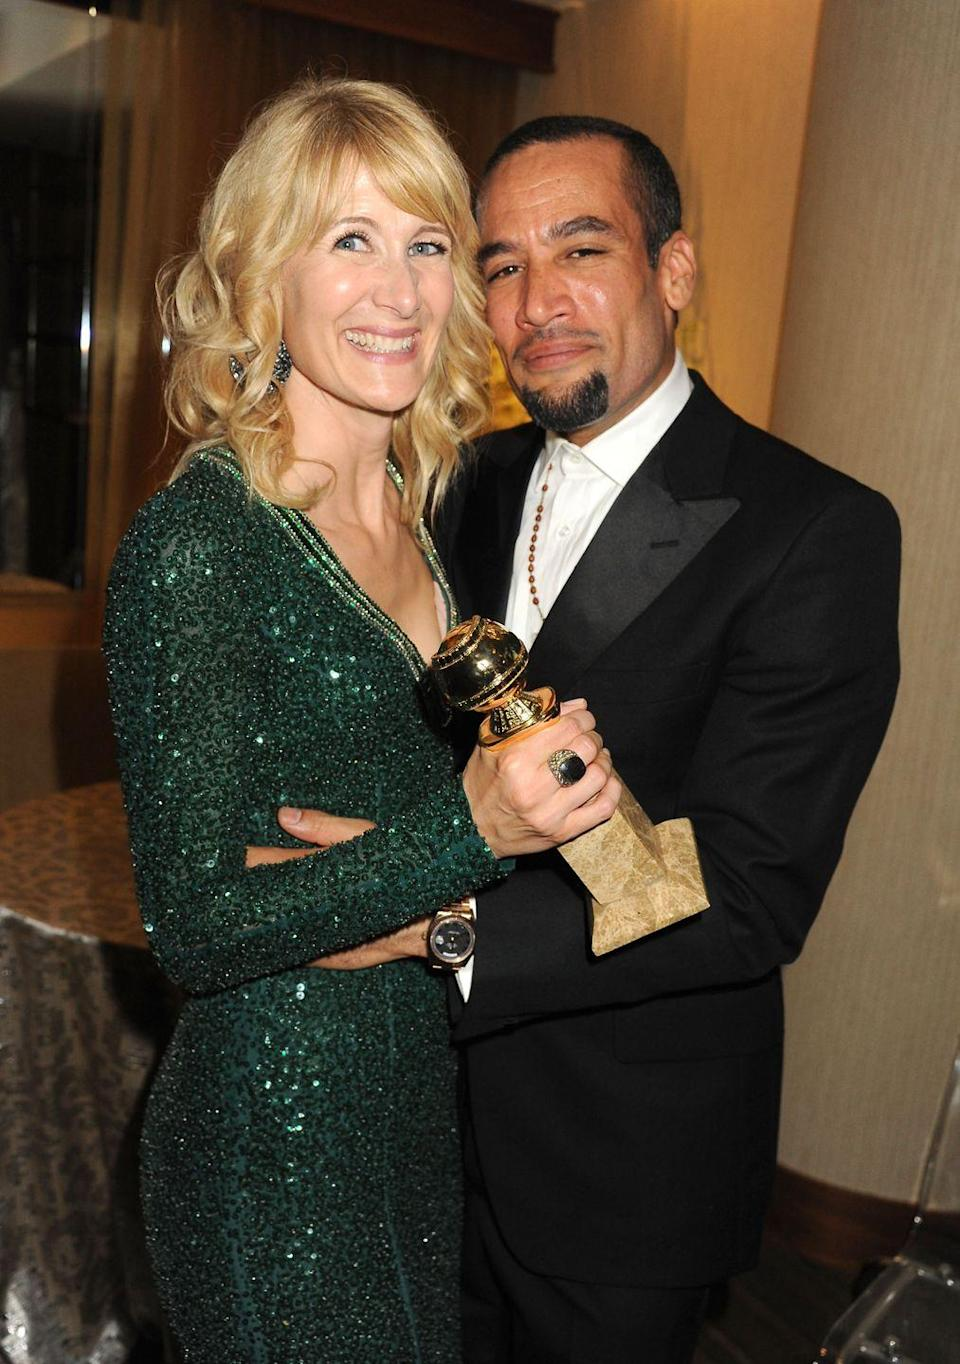 """<p>The<em> Big Little Lies </em>star married the Grammy-winning musician in 2005 in <a href=""""http://people.com/celebrity/actress-laura-dern-marries-ben-harper/"""" rel=""""nofollow noopener"""" target=""""_blank"""" data-ylk=""""slk:a small ceremony"""" class=""""link rapid-noclick-resp"""">a small ceremony</a> at their L.A. home after already having two kids together. In 2010, Ben <a href=""""https://www.hollywoodreporter.com/news/laura-dern-ben-harper-divorce-346393"""" rel=""""nofollow noopener"""" target=""""_blank"""" data-ylk=""""slk:filed"""" class=""""link rapid-noclick-resp"""">filed</a> for divorce, but they appeared to reconcile until 2012, when Laura was the one who filed. The second time stuck, as they were <a href=""""https://www.upi.com/Laura-Dern-is-officially-divorced-from-Ben-Harper/55811378952269/"""" rel=""""nofollow noopener"""" target=""""_blank"""" data-ylk=""""slk:officially divorced"""" class=""""link rapid-noclick-resp"""">officially divorced</a> in 2013. """"It just is what it is,"""" Laura <a href=""""https://www.telegraph.co.uk/culture/film/10887191/Laura-Dern-on-divorce-taking-risks-and-The-Fault-In-Our-Stars.html"""" rel=""""nofollow noopener"""" target=""""_blank"""" data-ylk=""""slk:told The Telegraph"""" class=""""link rapid-noclick-resp"""">told <em>The Telegraph</em></a> in 2014. """"Sadly, half of marriages end in divorce….There's no shame around it—unless you want to project that onto yourself—but certainly, there's no longer cultural shame. Everyone is walking through it.""""</p>"""